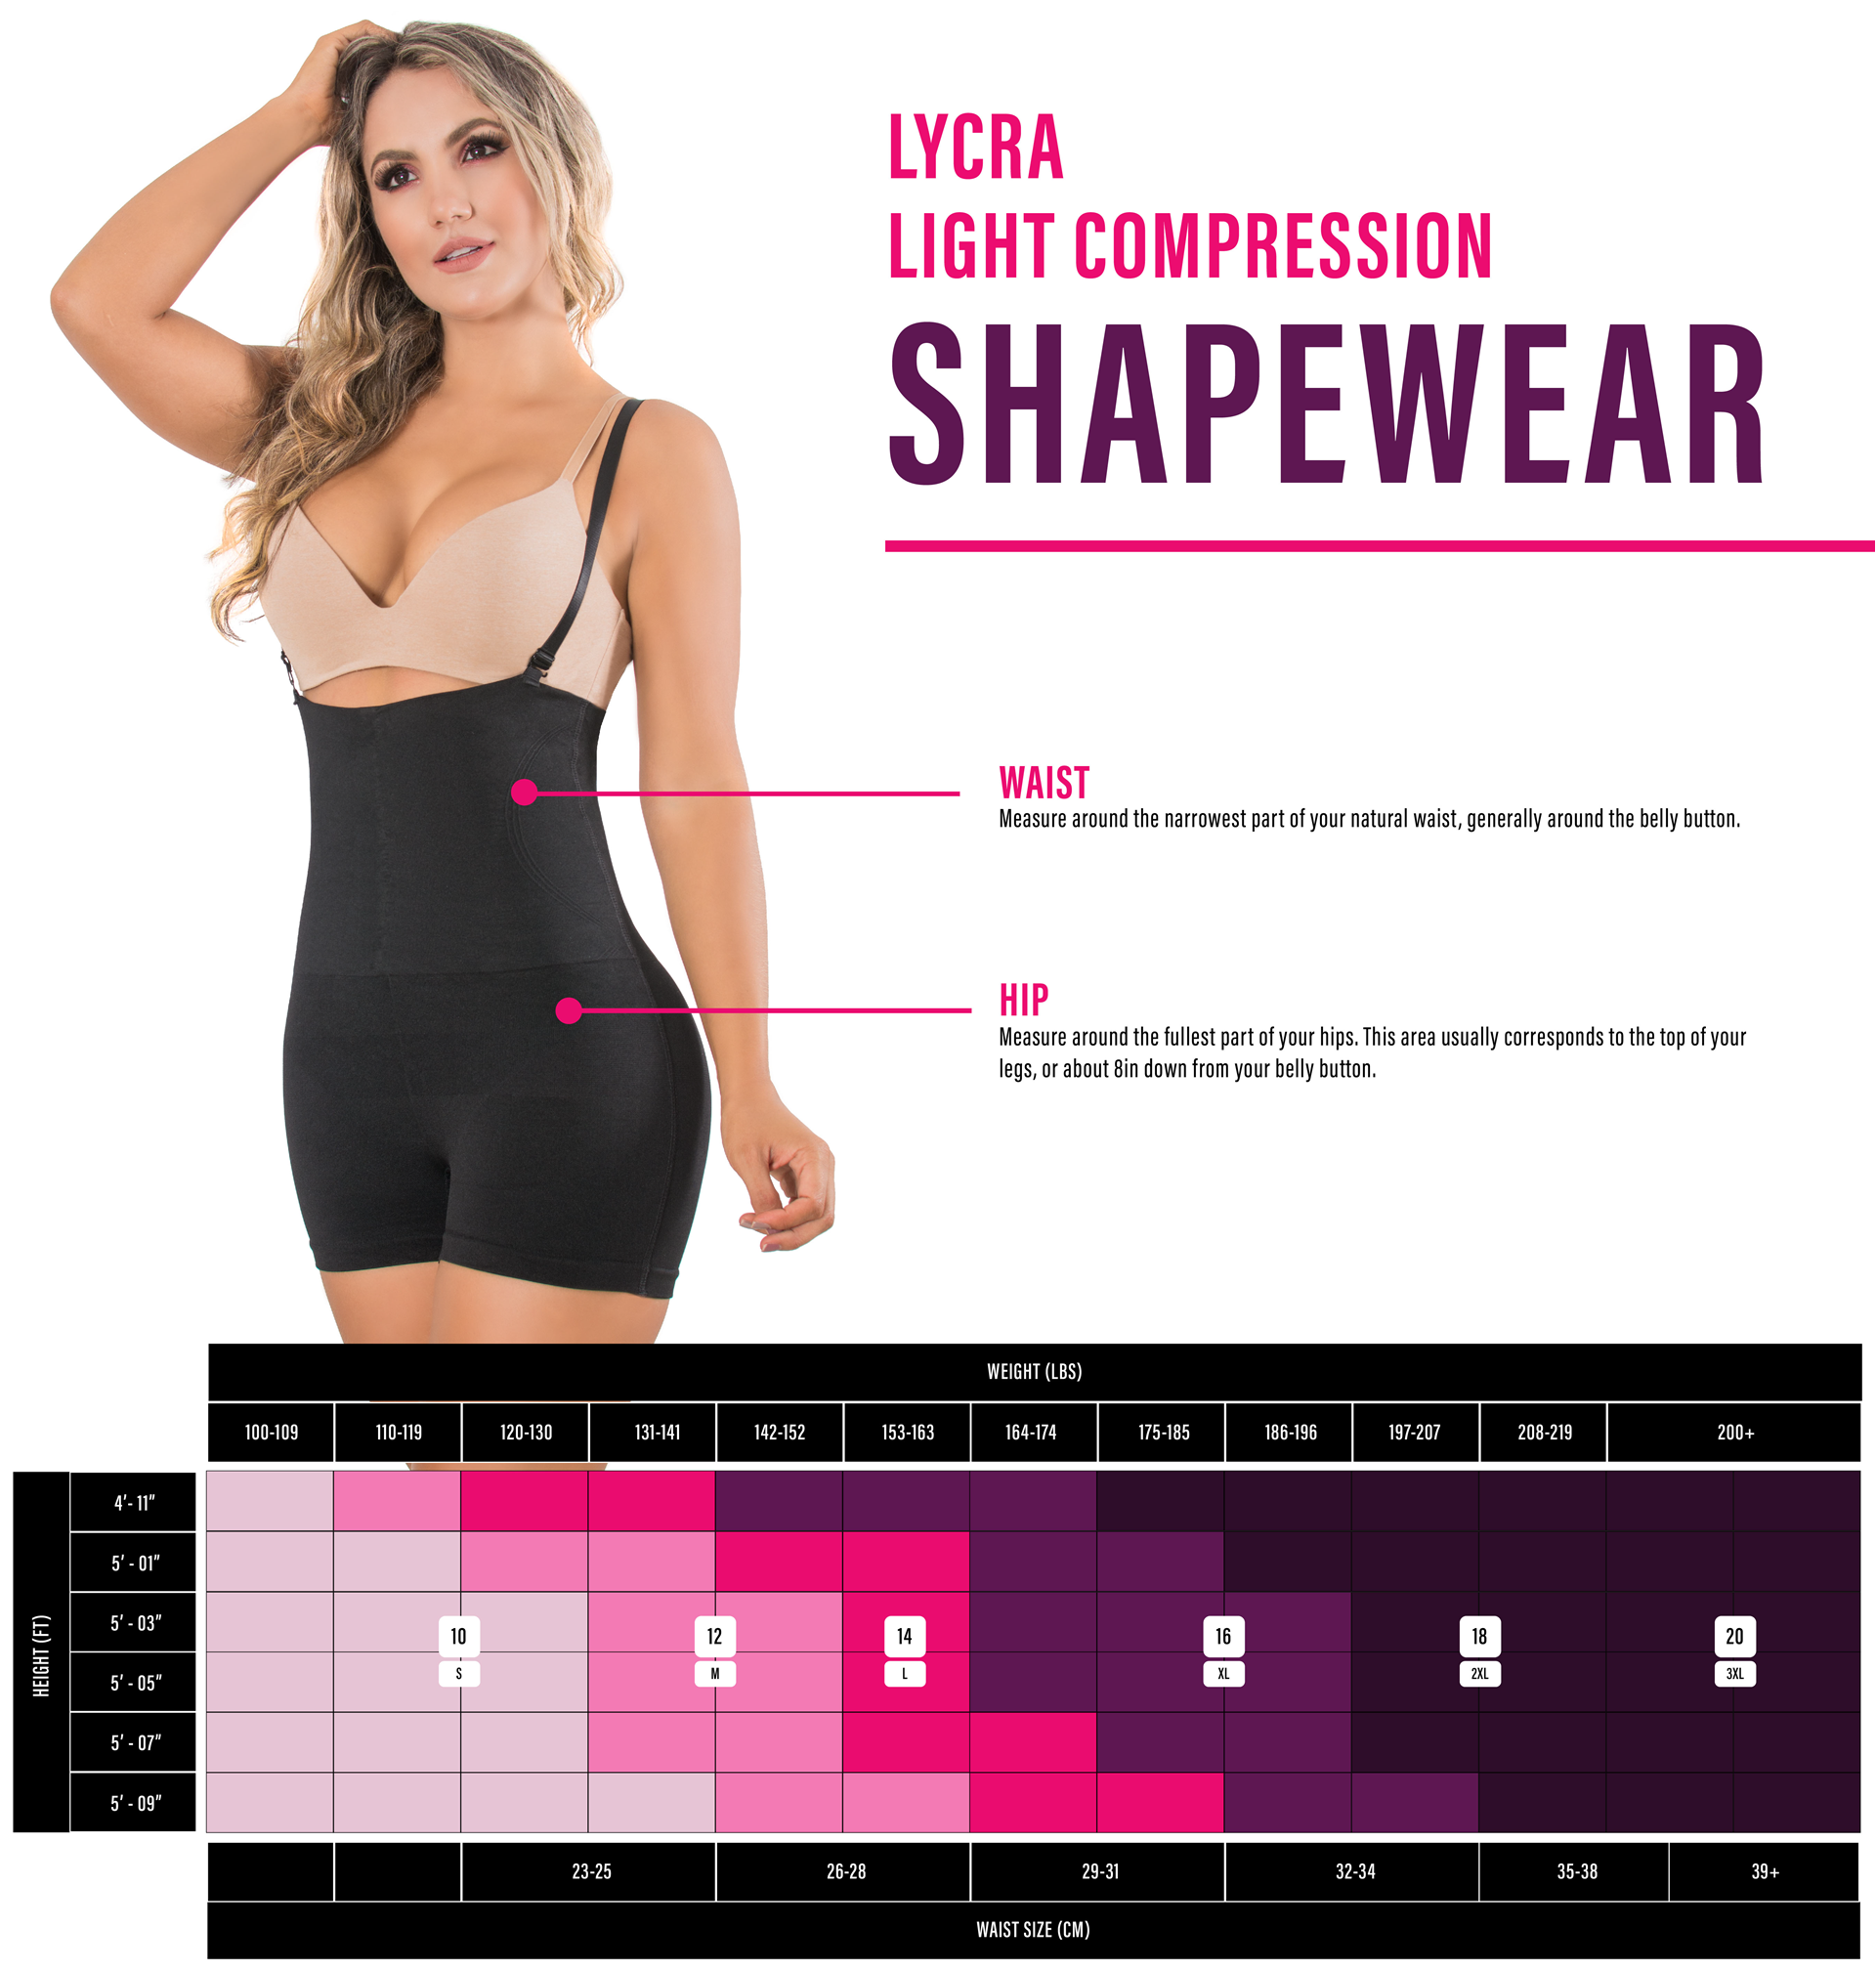 Nicolette Shapewear Lycra Light Compression Shapewear Measurement Chart